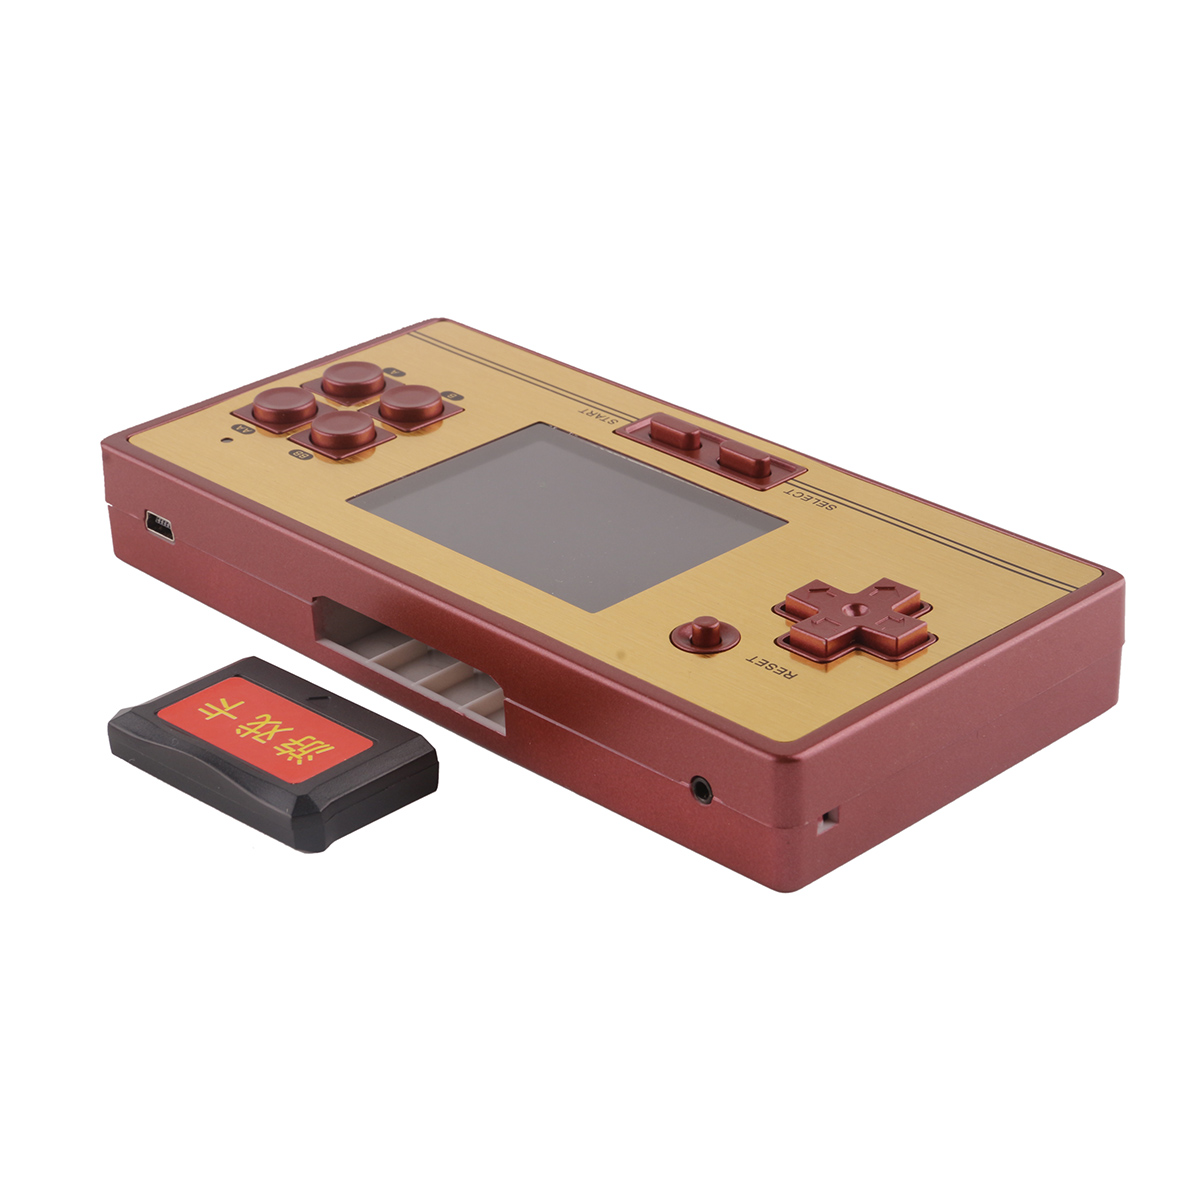 GB BOY Portable retro video game console handheld game console 2.6inch color screen Support Connect to TV Built-in 600 games image